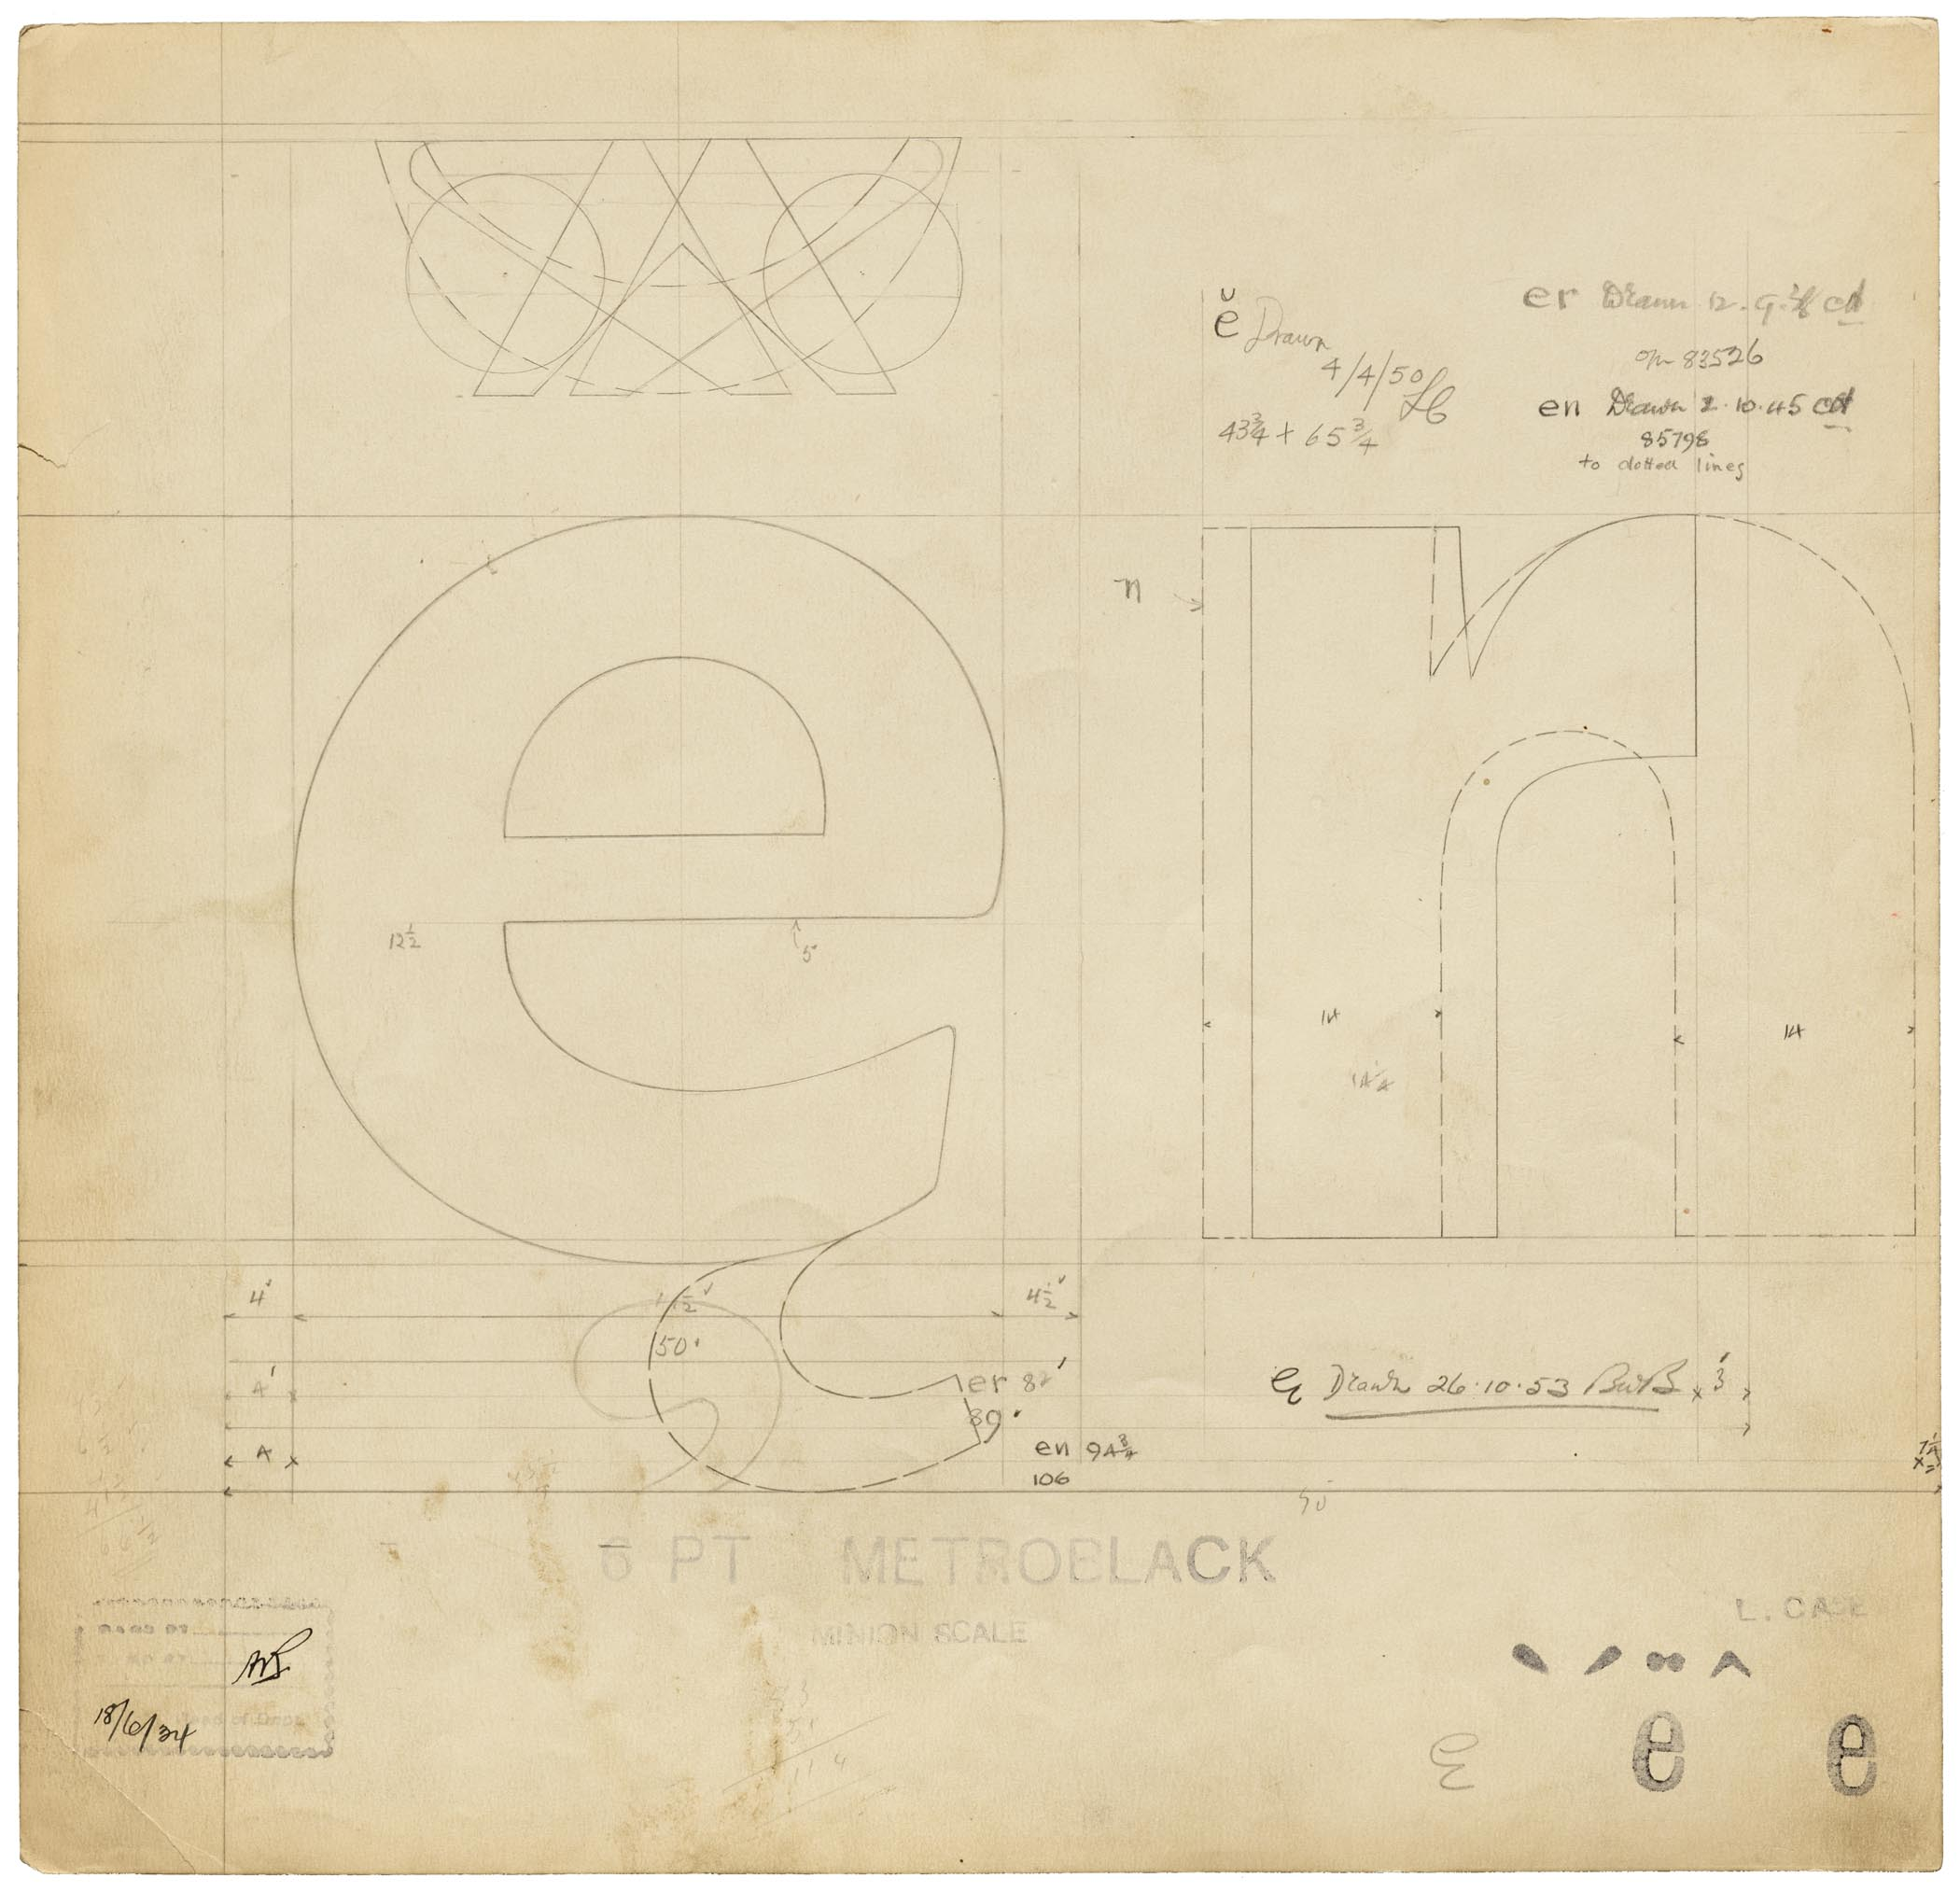 Drawing for Metroblack 'e', 'n', 'r', at 6 pt., Linotype & Machinery, Manchester, 1934.